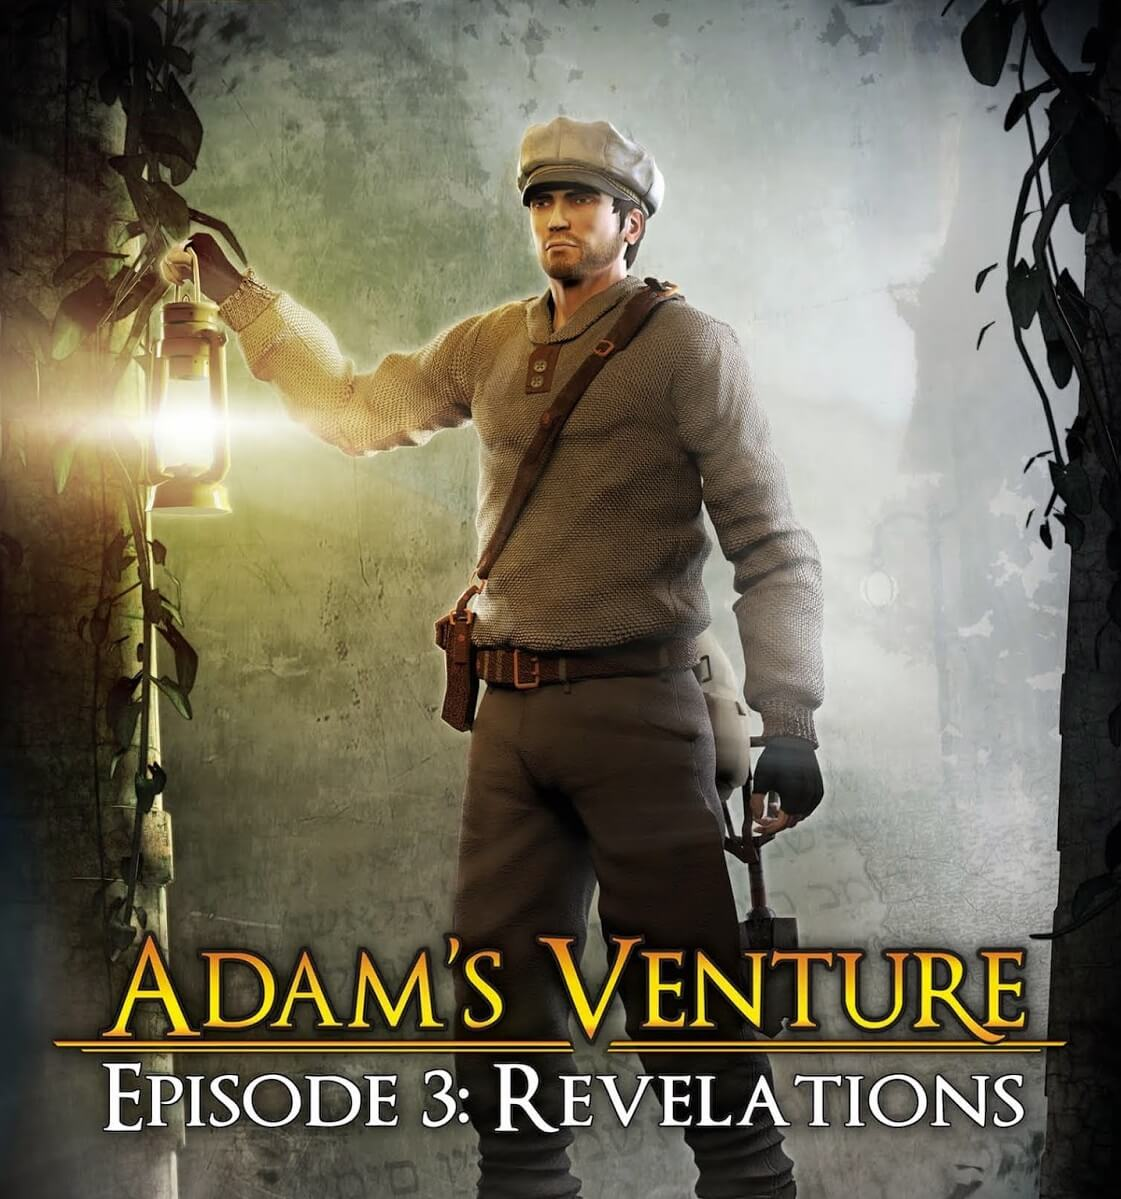 Adams Venture 3 Revelations game